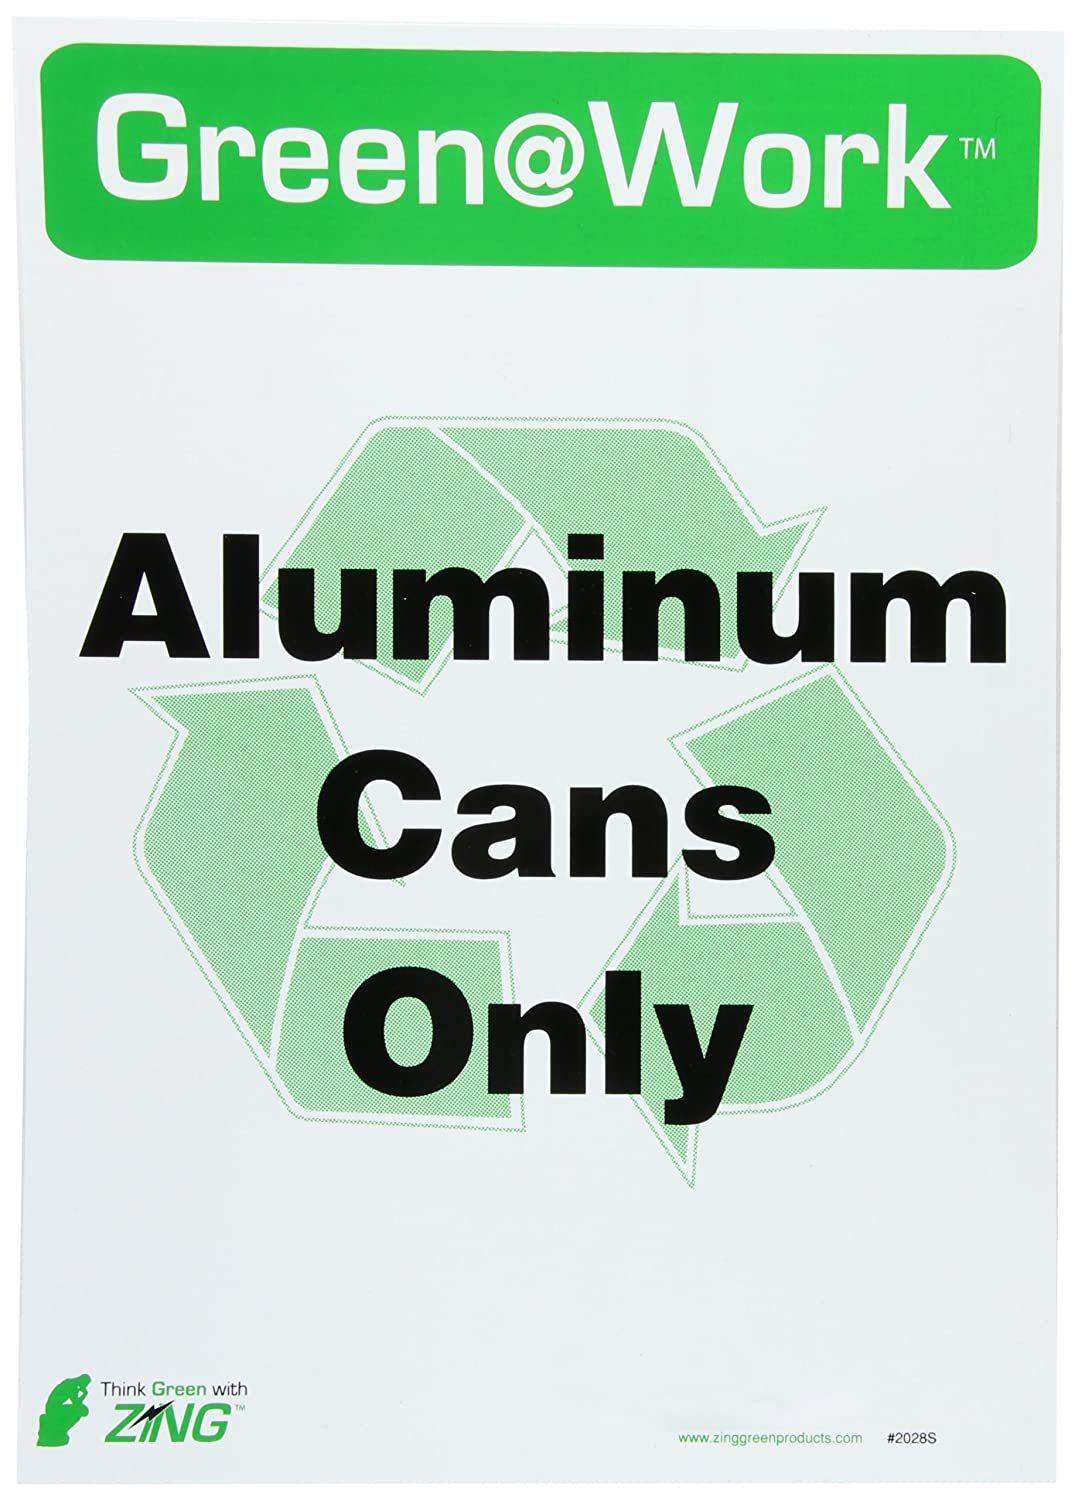 5//Pk ZING 1028S Eco Label 7Hx10W Recycle Recycled Aluminum Cans Recycled Polystyrene Self Adhesive